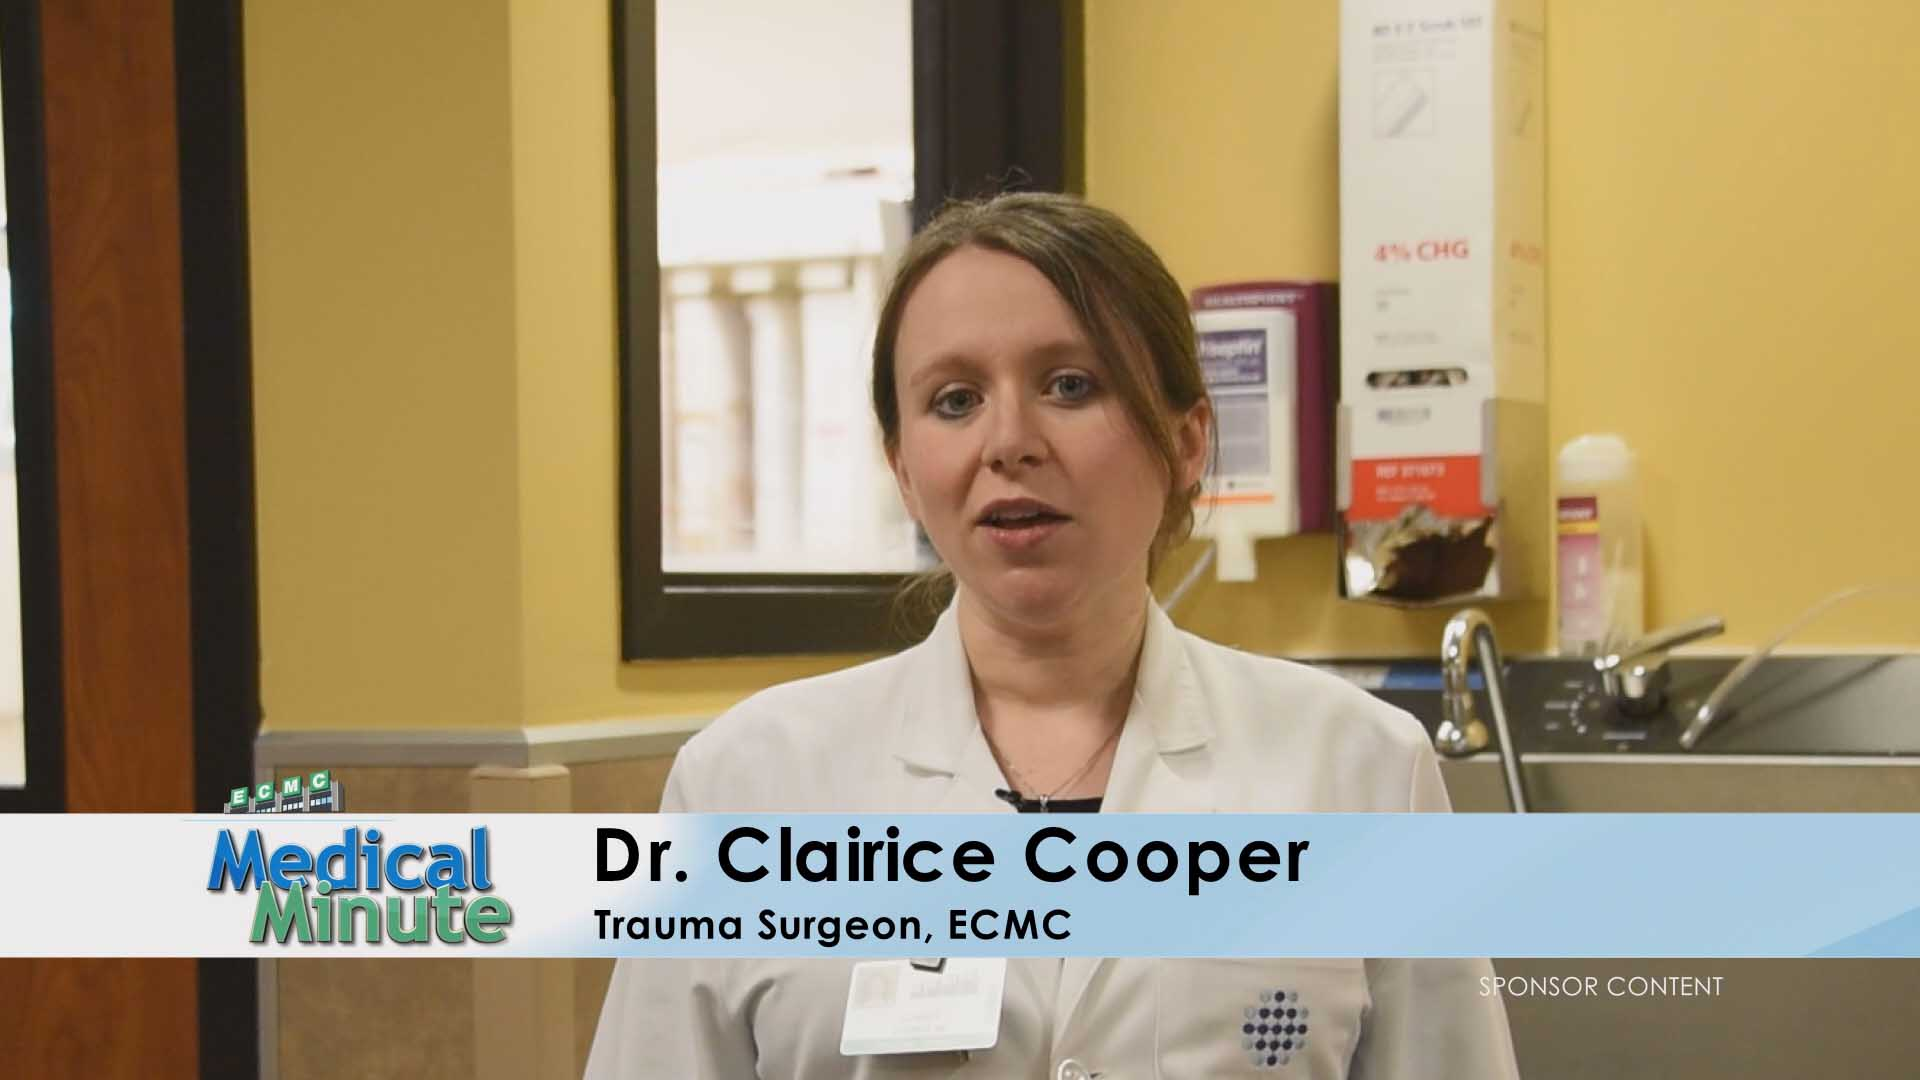 ecmc-medical-minute-dr-cooper-drowsydriving-12-19-16-still